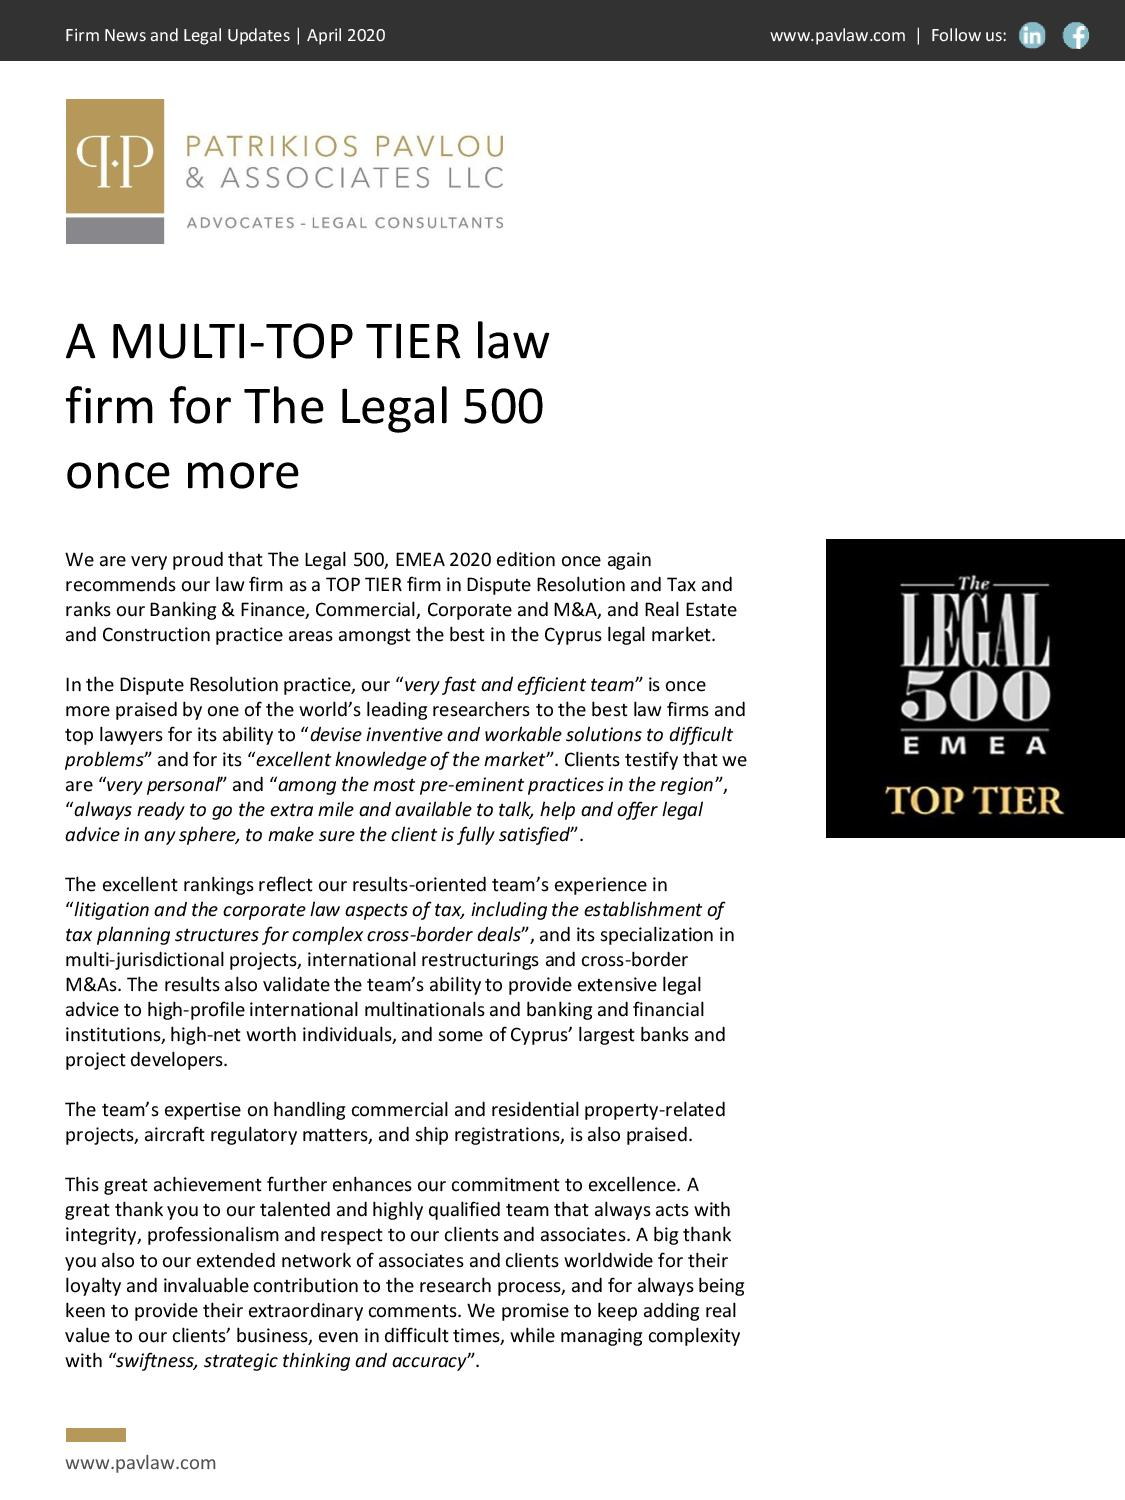 Patrikios Pavlou & Associates LLC: A MULTI-TOP TIER law firm for The Legal 500 once more